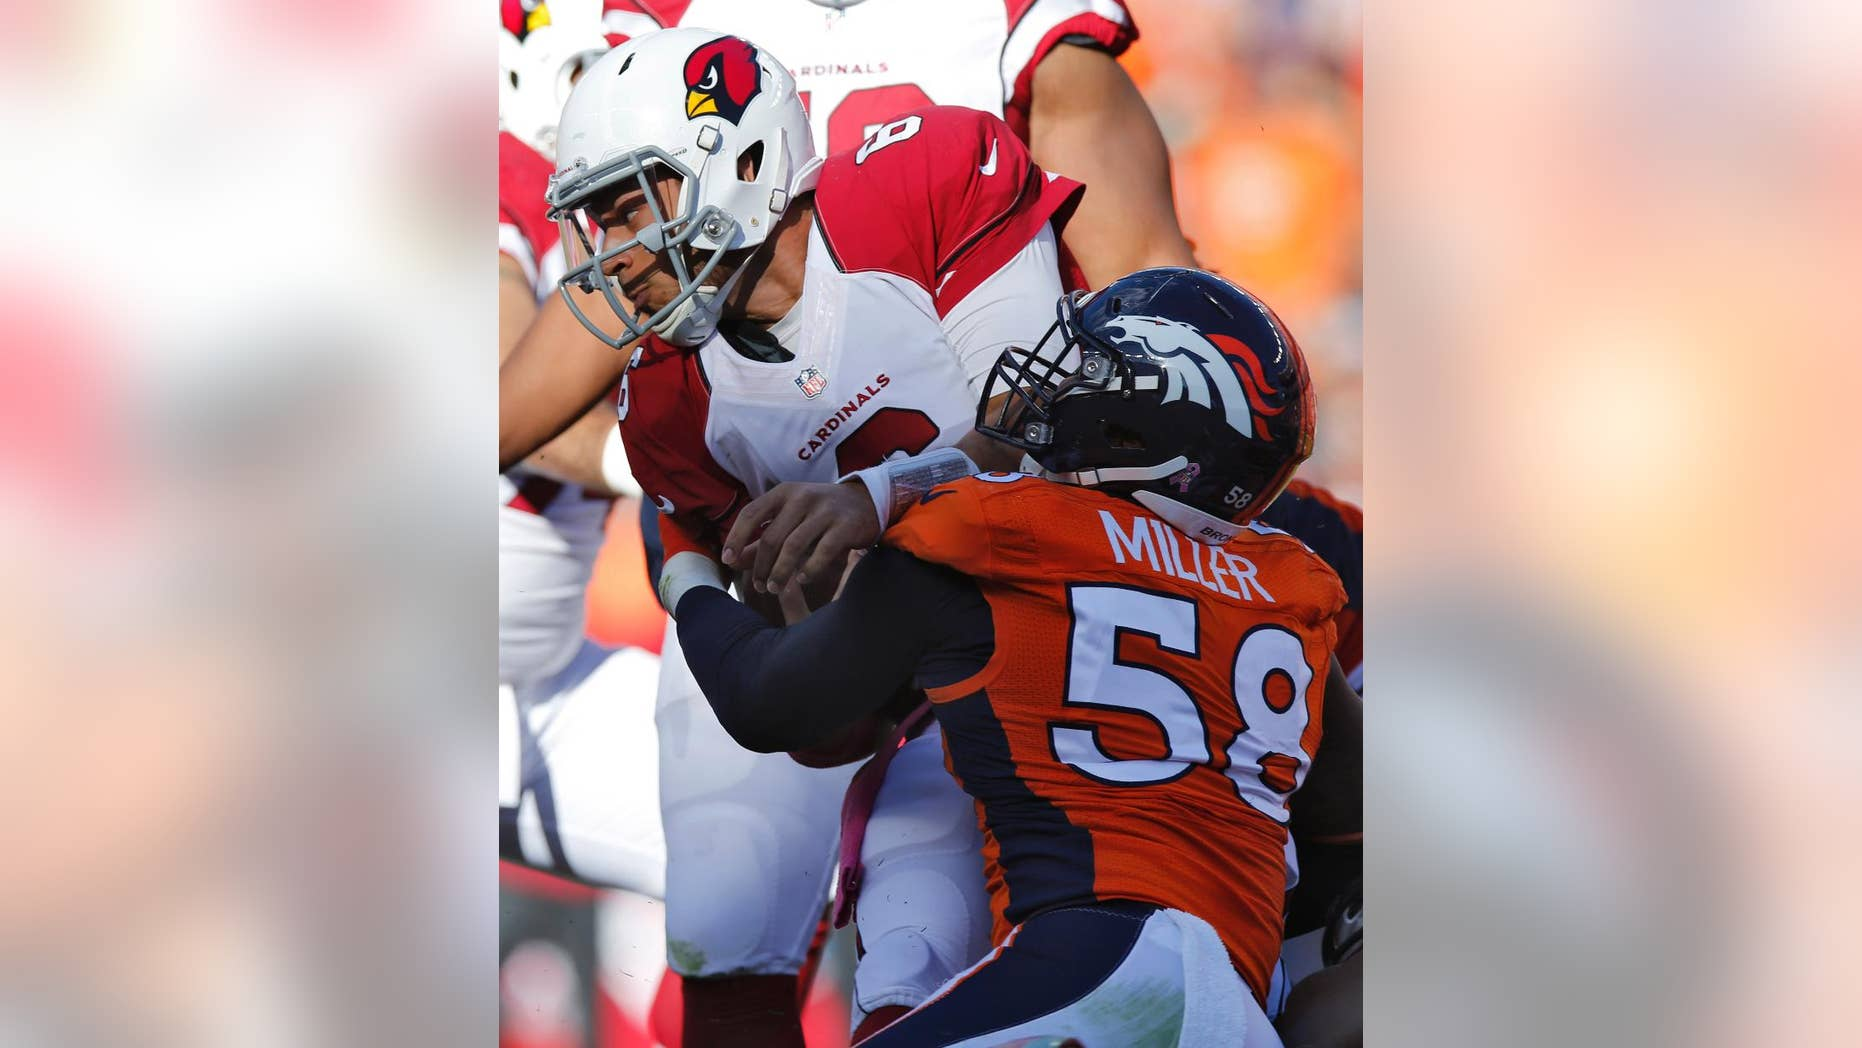 Arizona Cardinals quarterback Logan Thomas is sacked by Denver Broncos outside linebacker Von Miller (58) during the second half of an NFL football game, Sunday, Oct. 5, 2014, in Denver. (AP Photo/David Zalubowski)